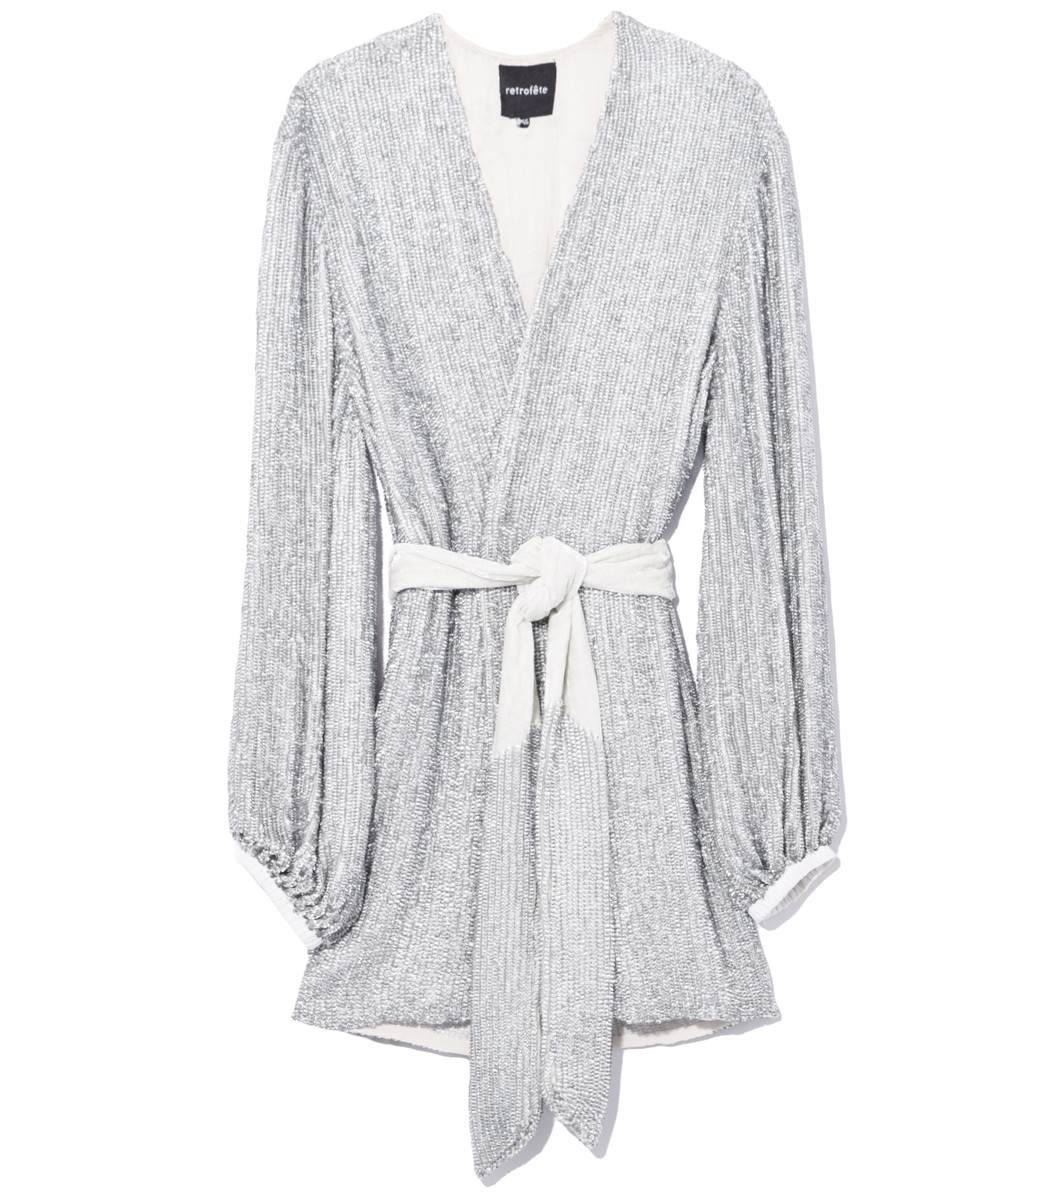 Retroféte Gabrielle Robe Dress in Silver